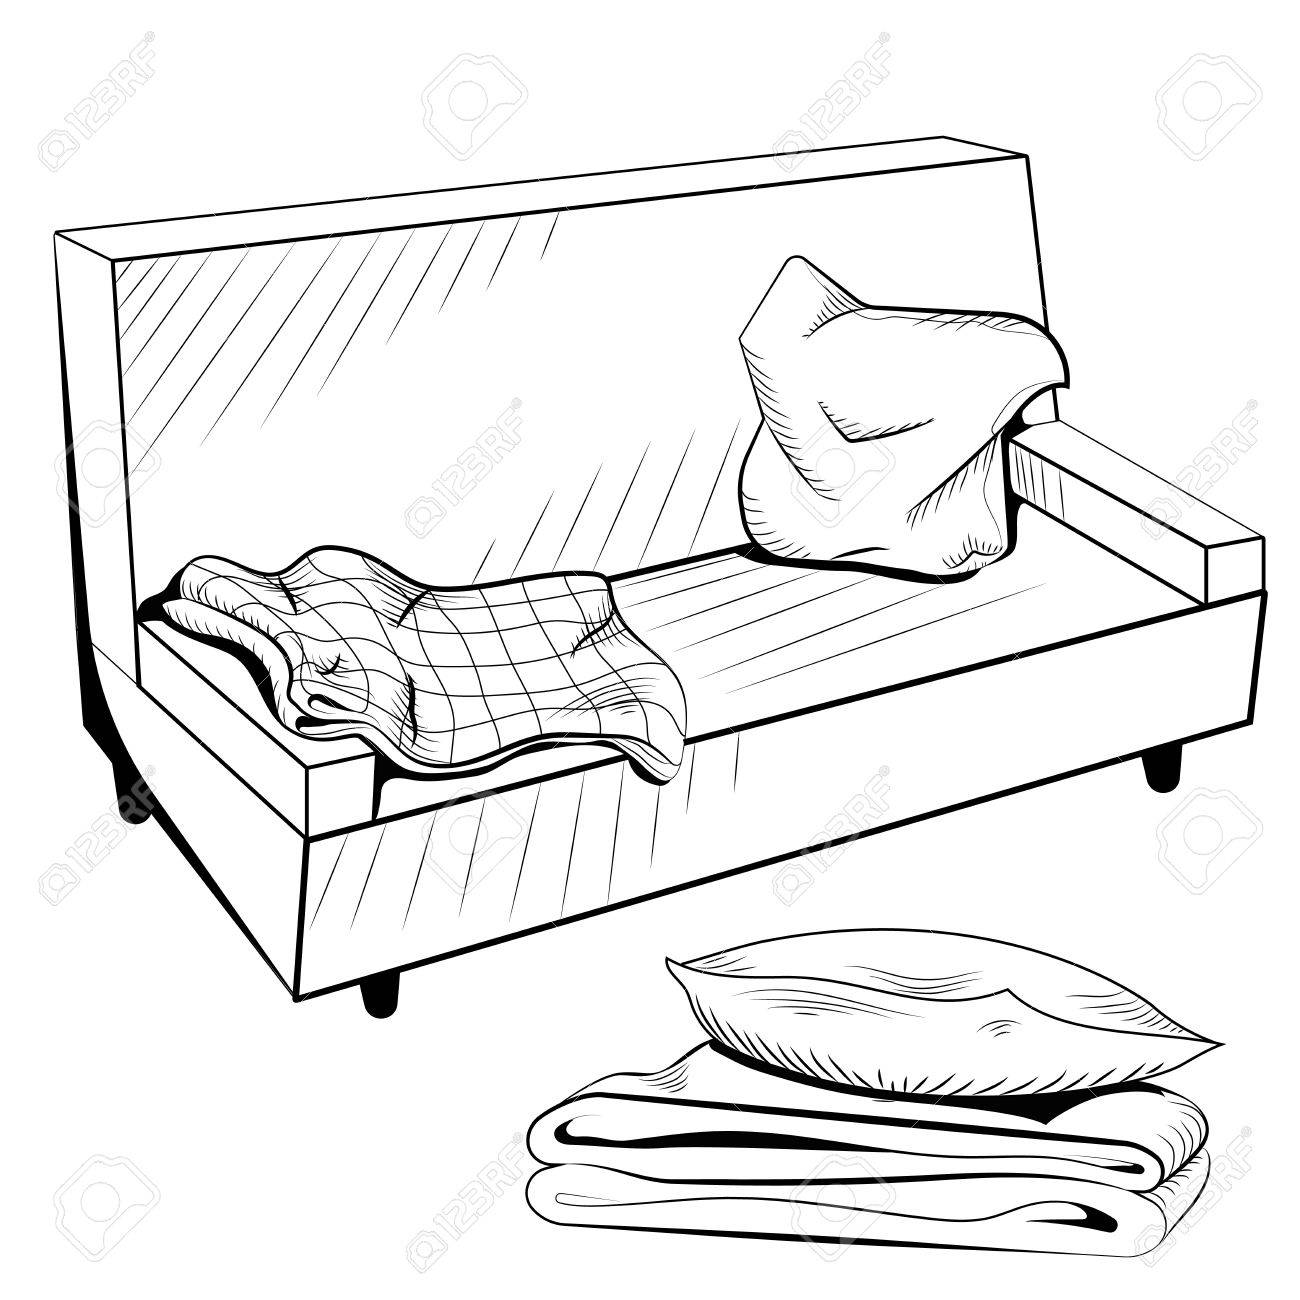 1300x1300 Vector Black And White Sofa With A Warm Blanket And Pillows